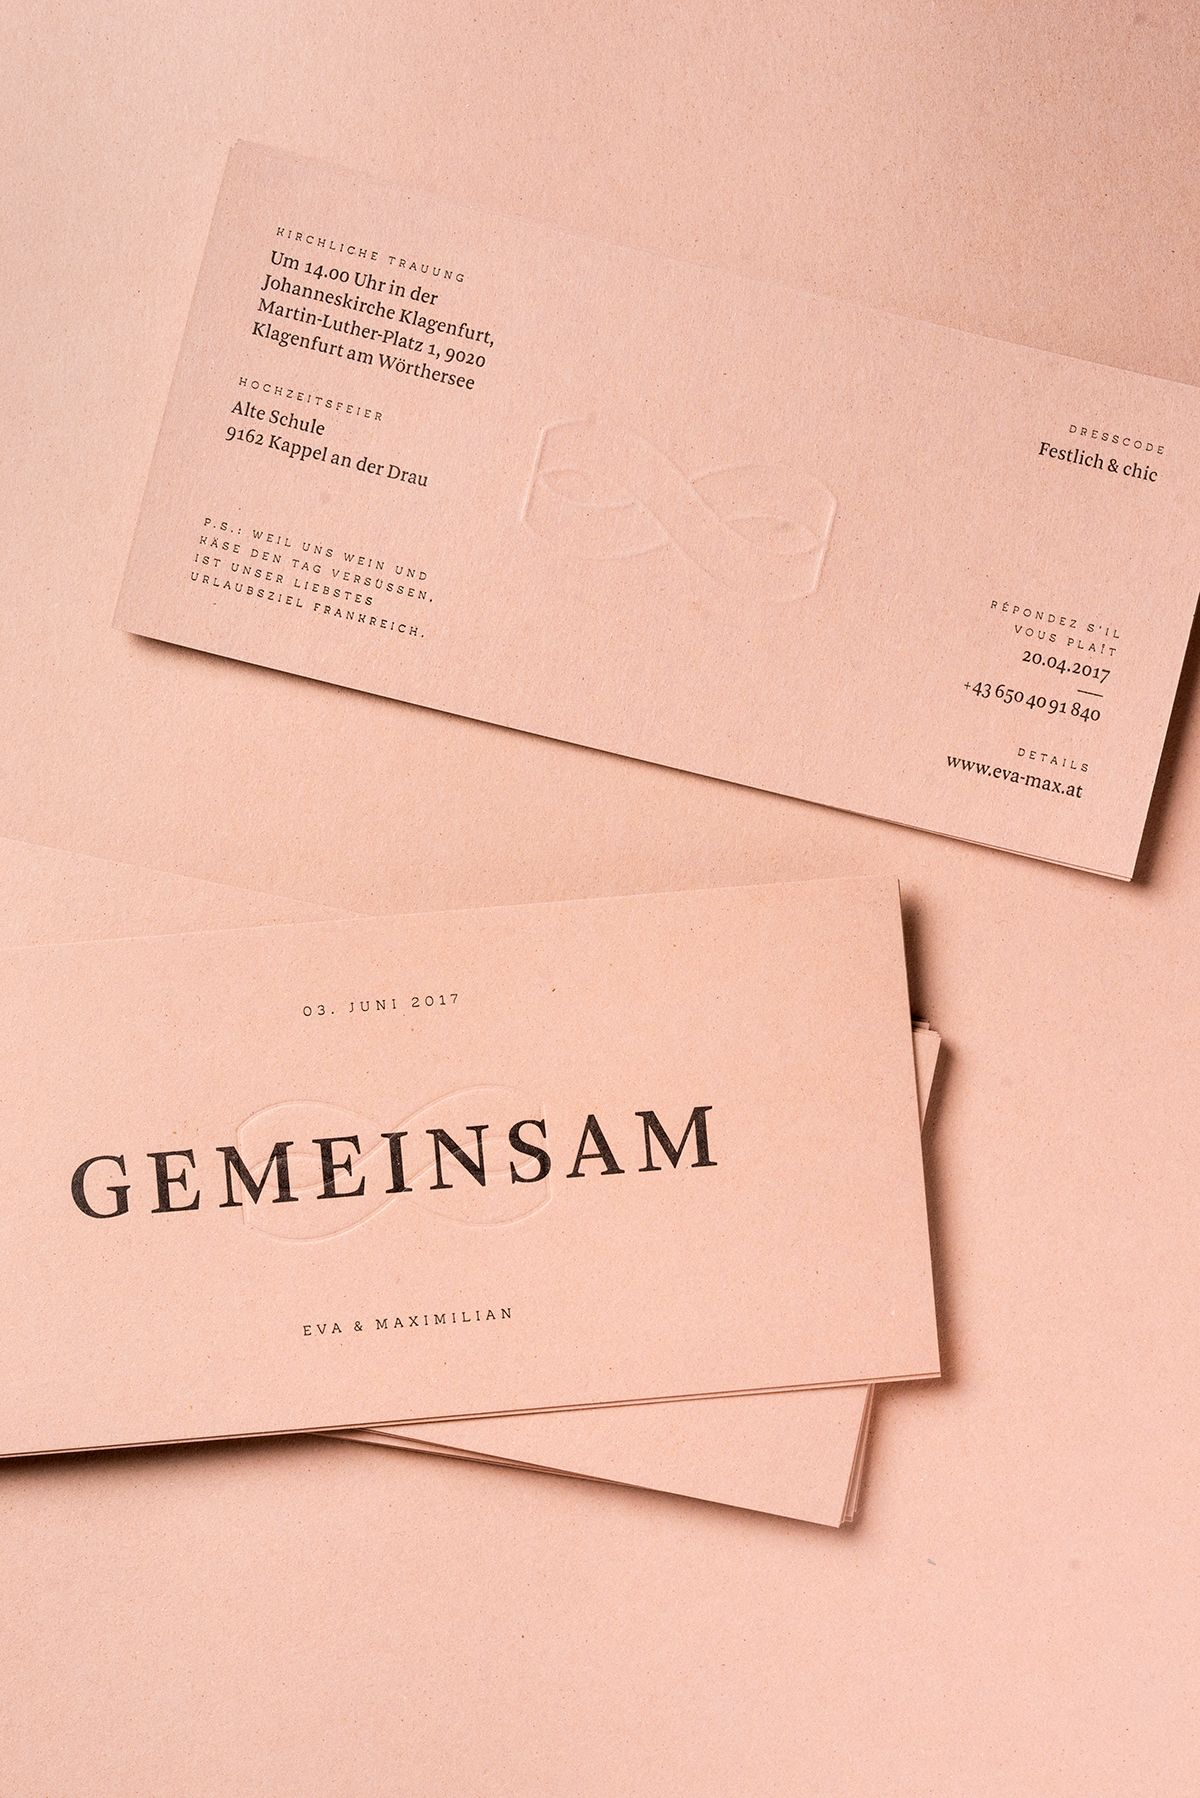 Wedding invitation – Gemeinsam on Behance | Branding | Pinterest ...